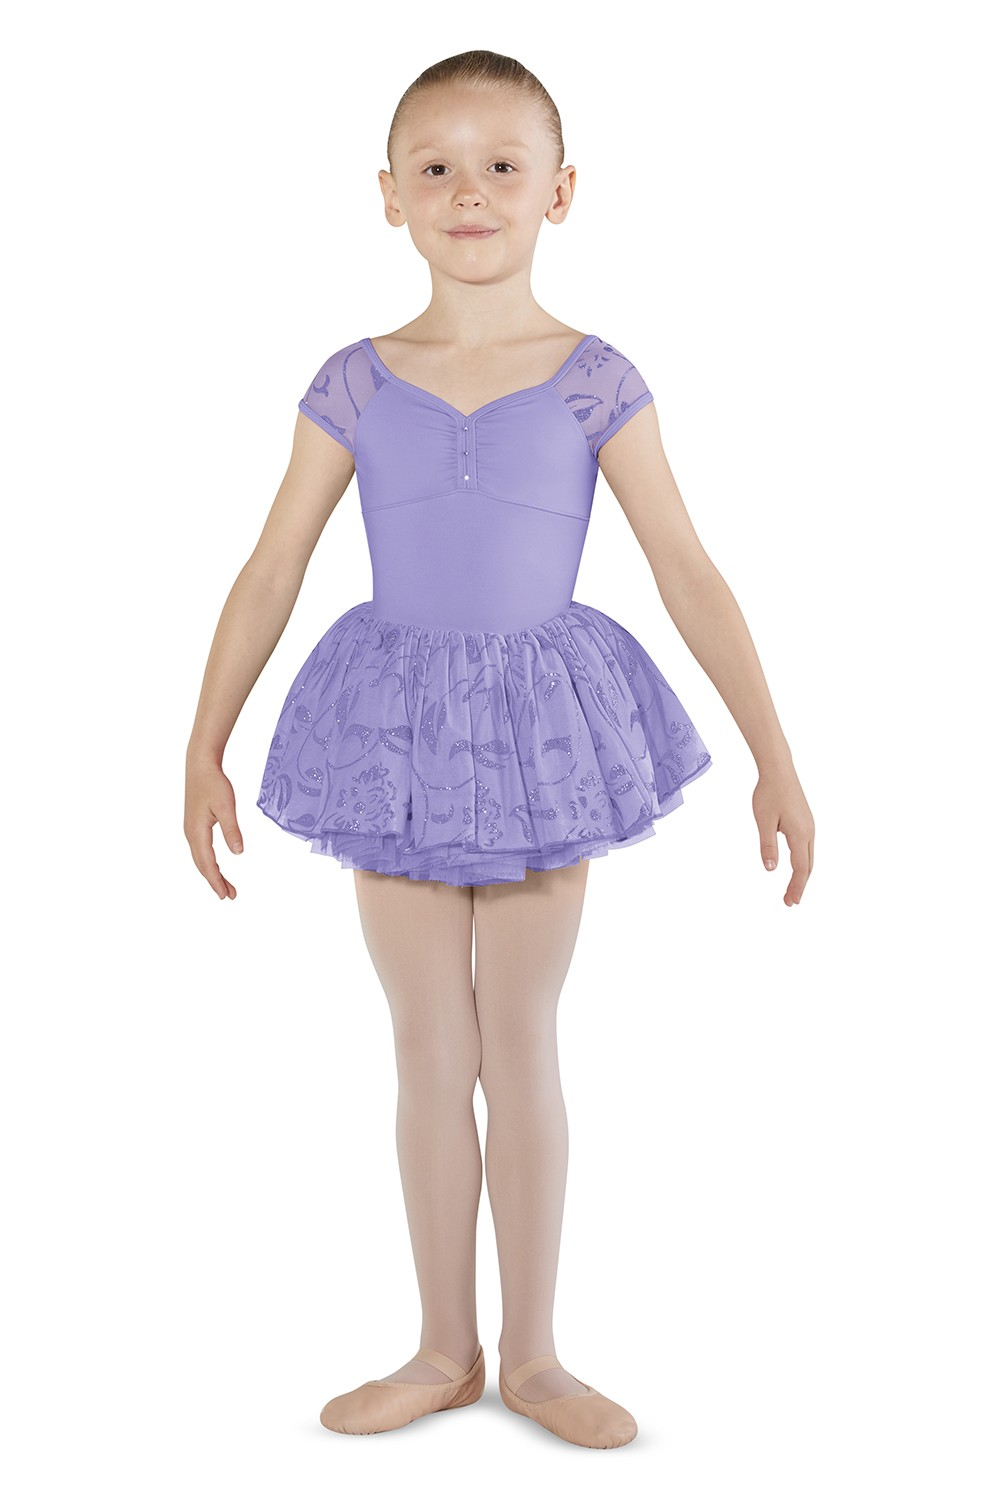 2b5b514de7 BLOCH® Children's Dance & Ballet Skirts - BLOCH® US Store